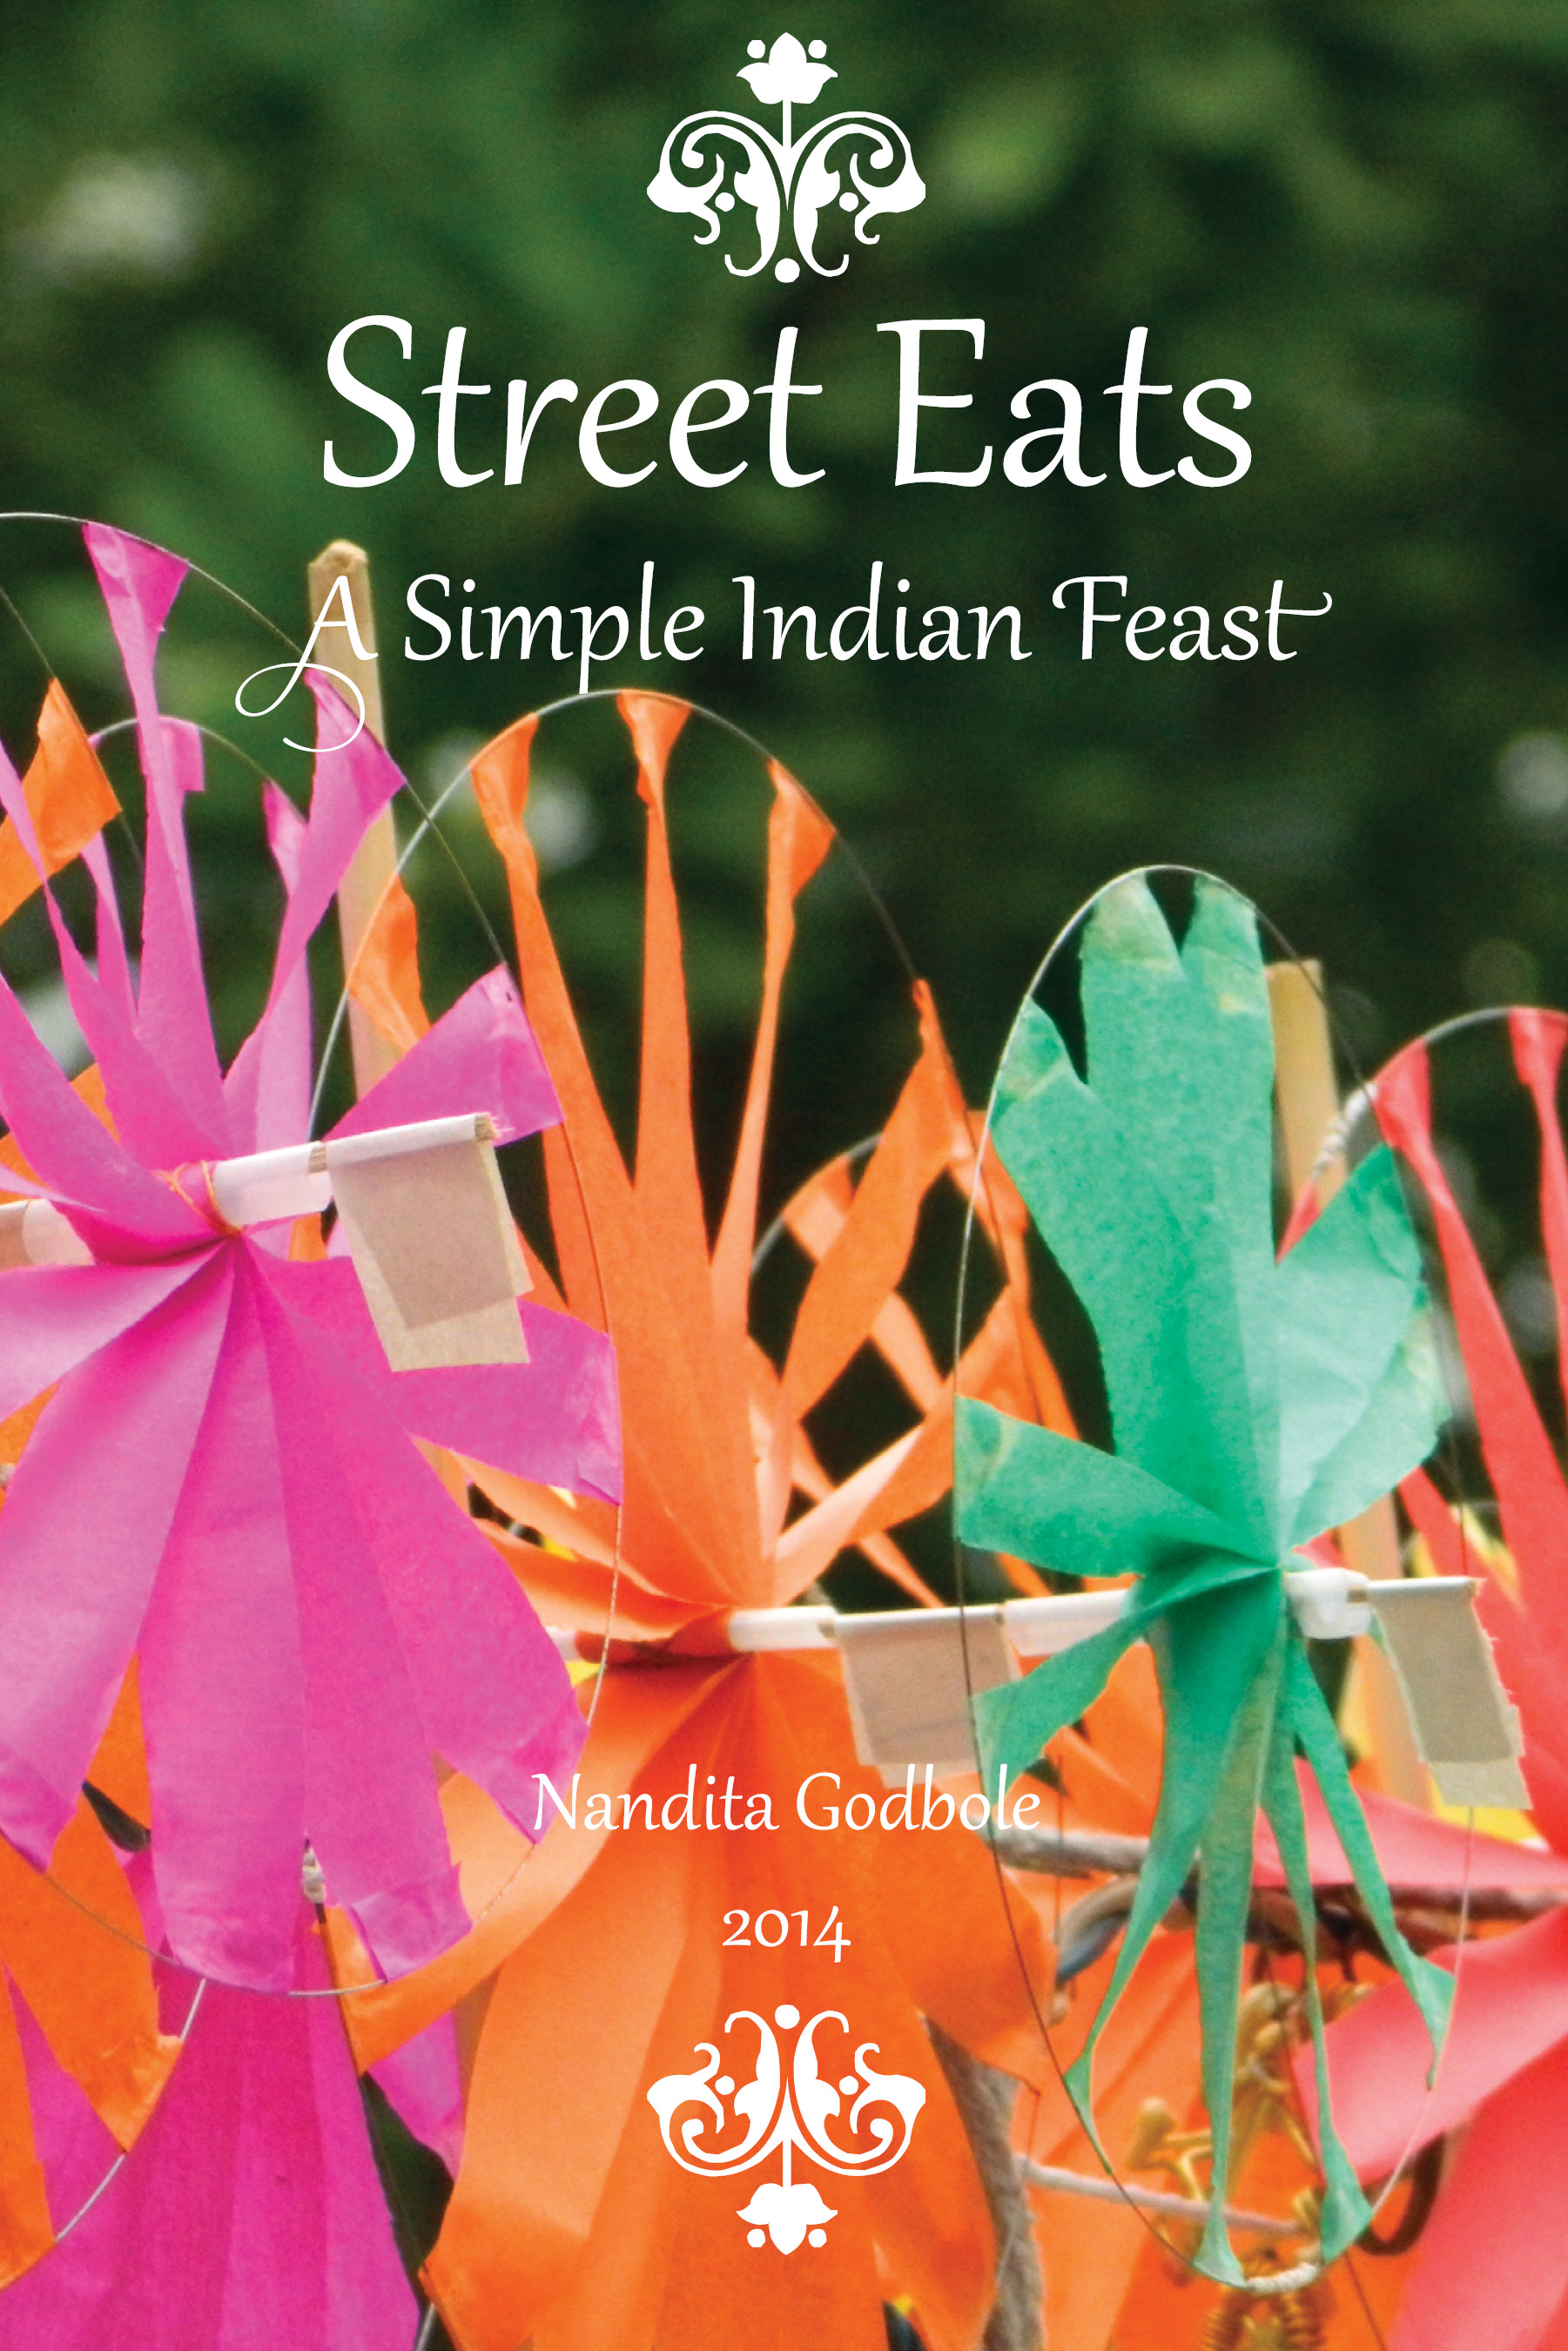 Street Eats: A Simple Indian Feast